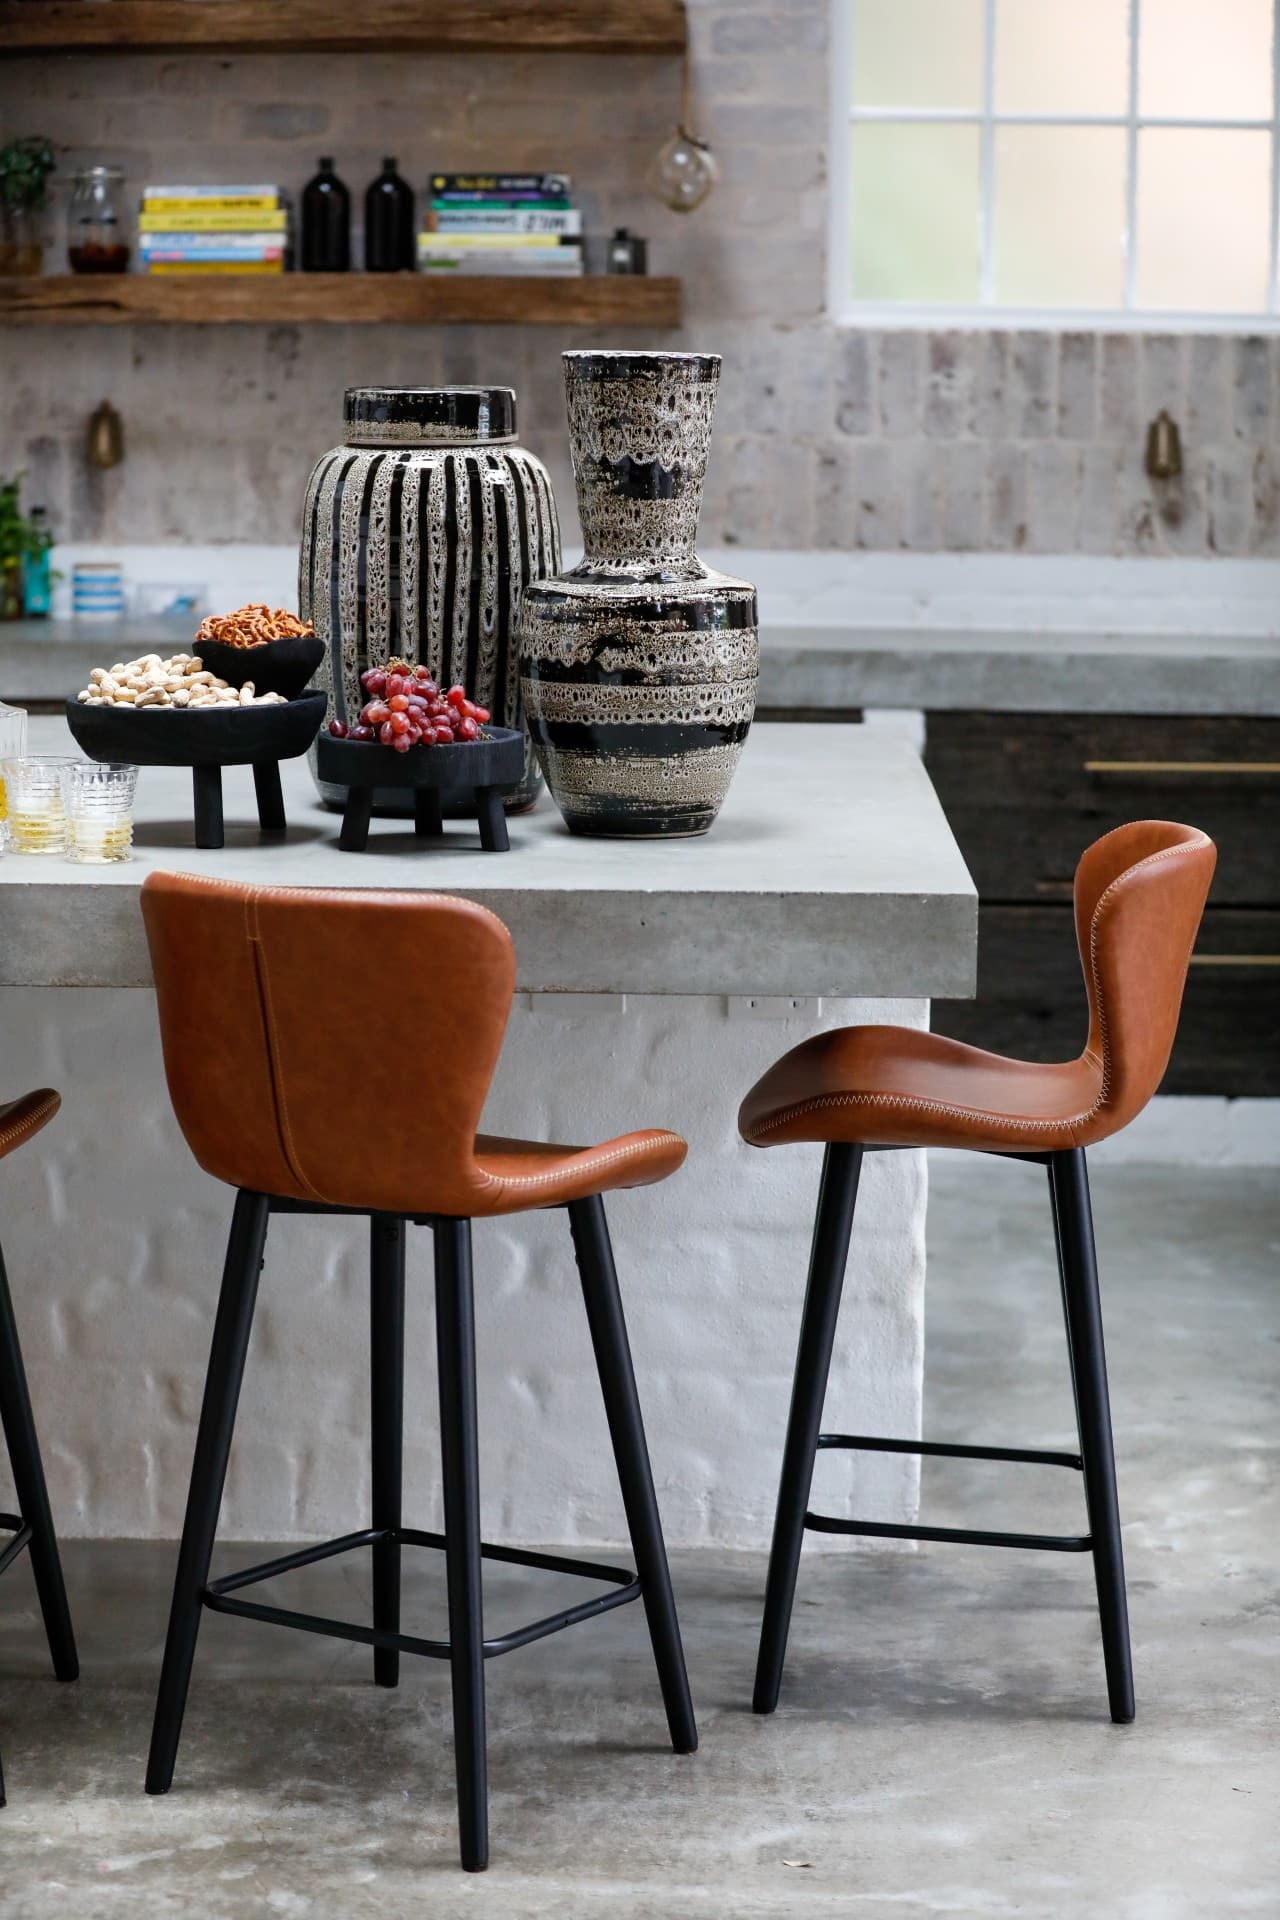 tan leather bench stools in industrial warehouse kitchen with ceramic vases